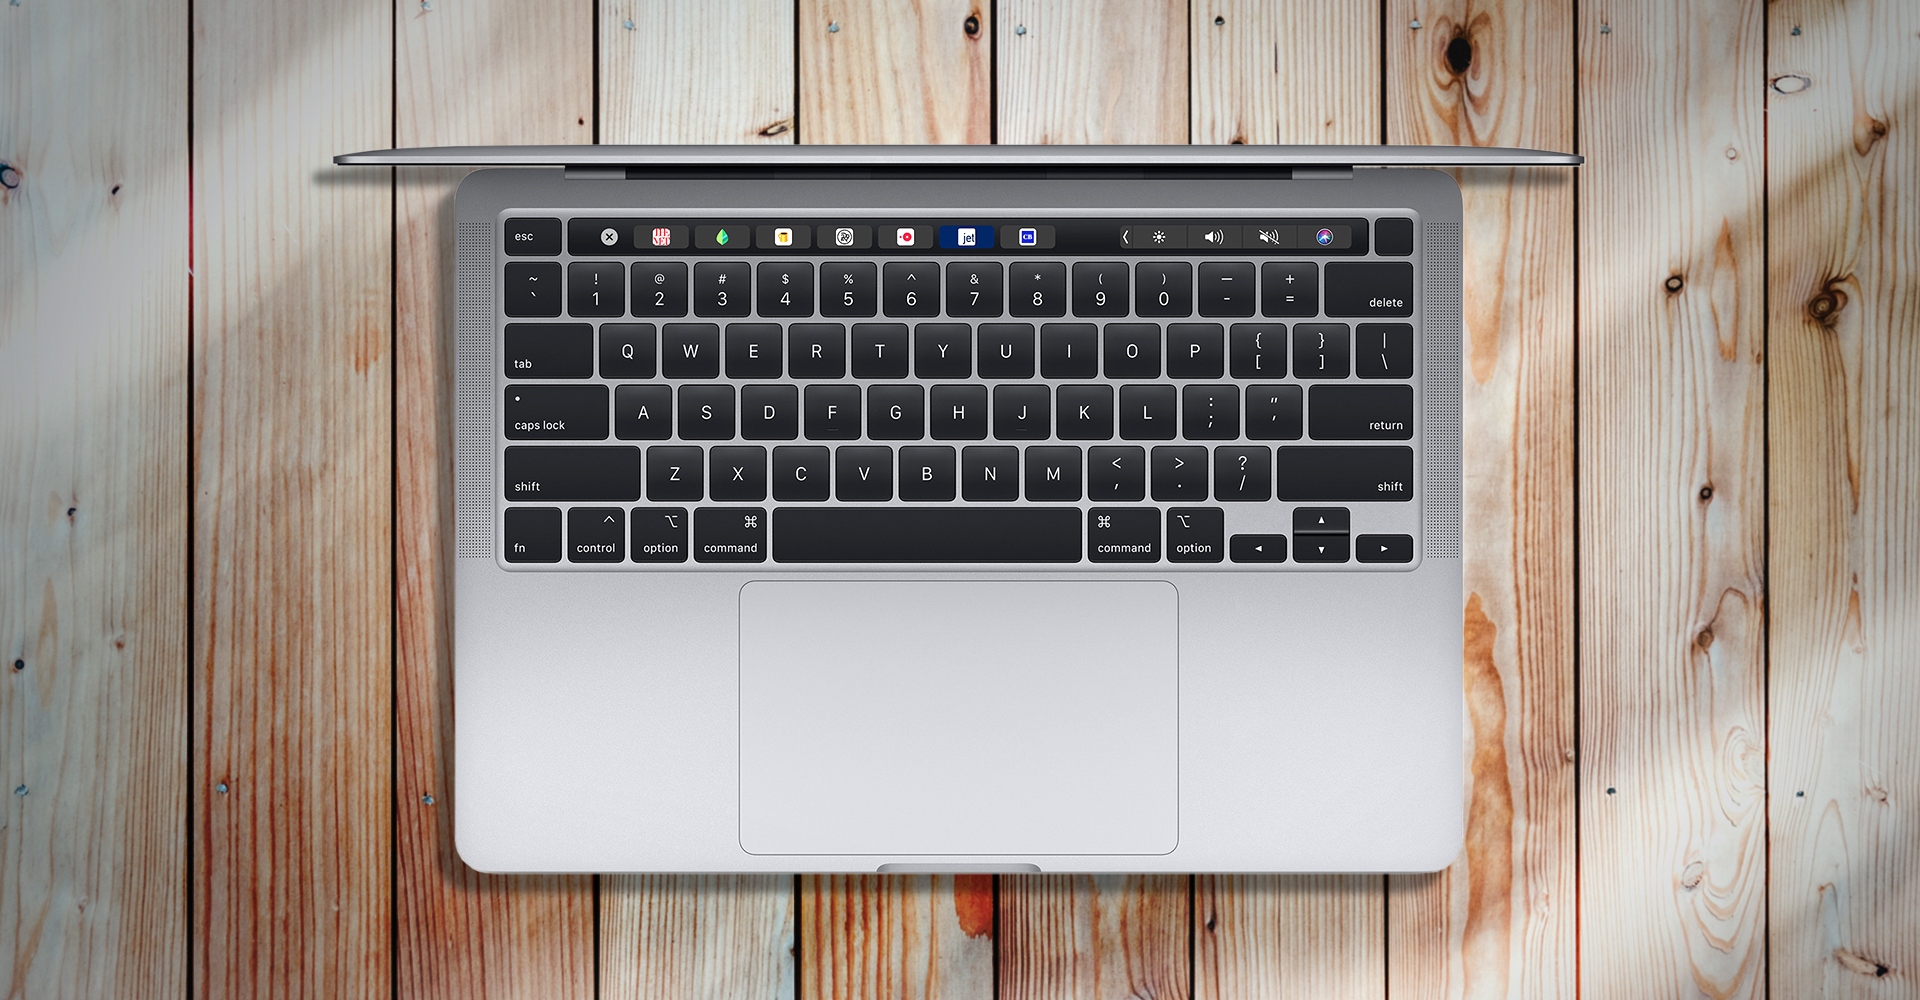 MacBook Pro 13 Magic Keyboard